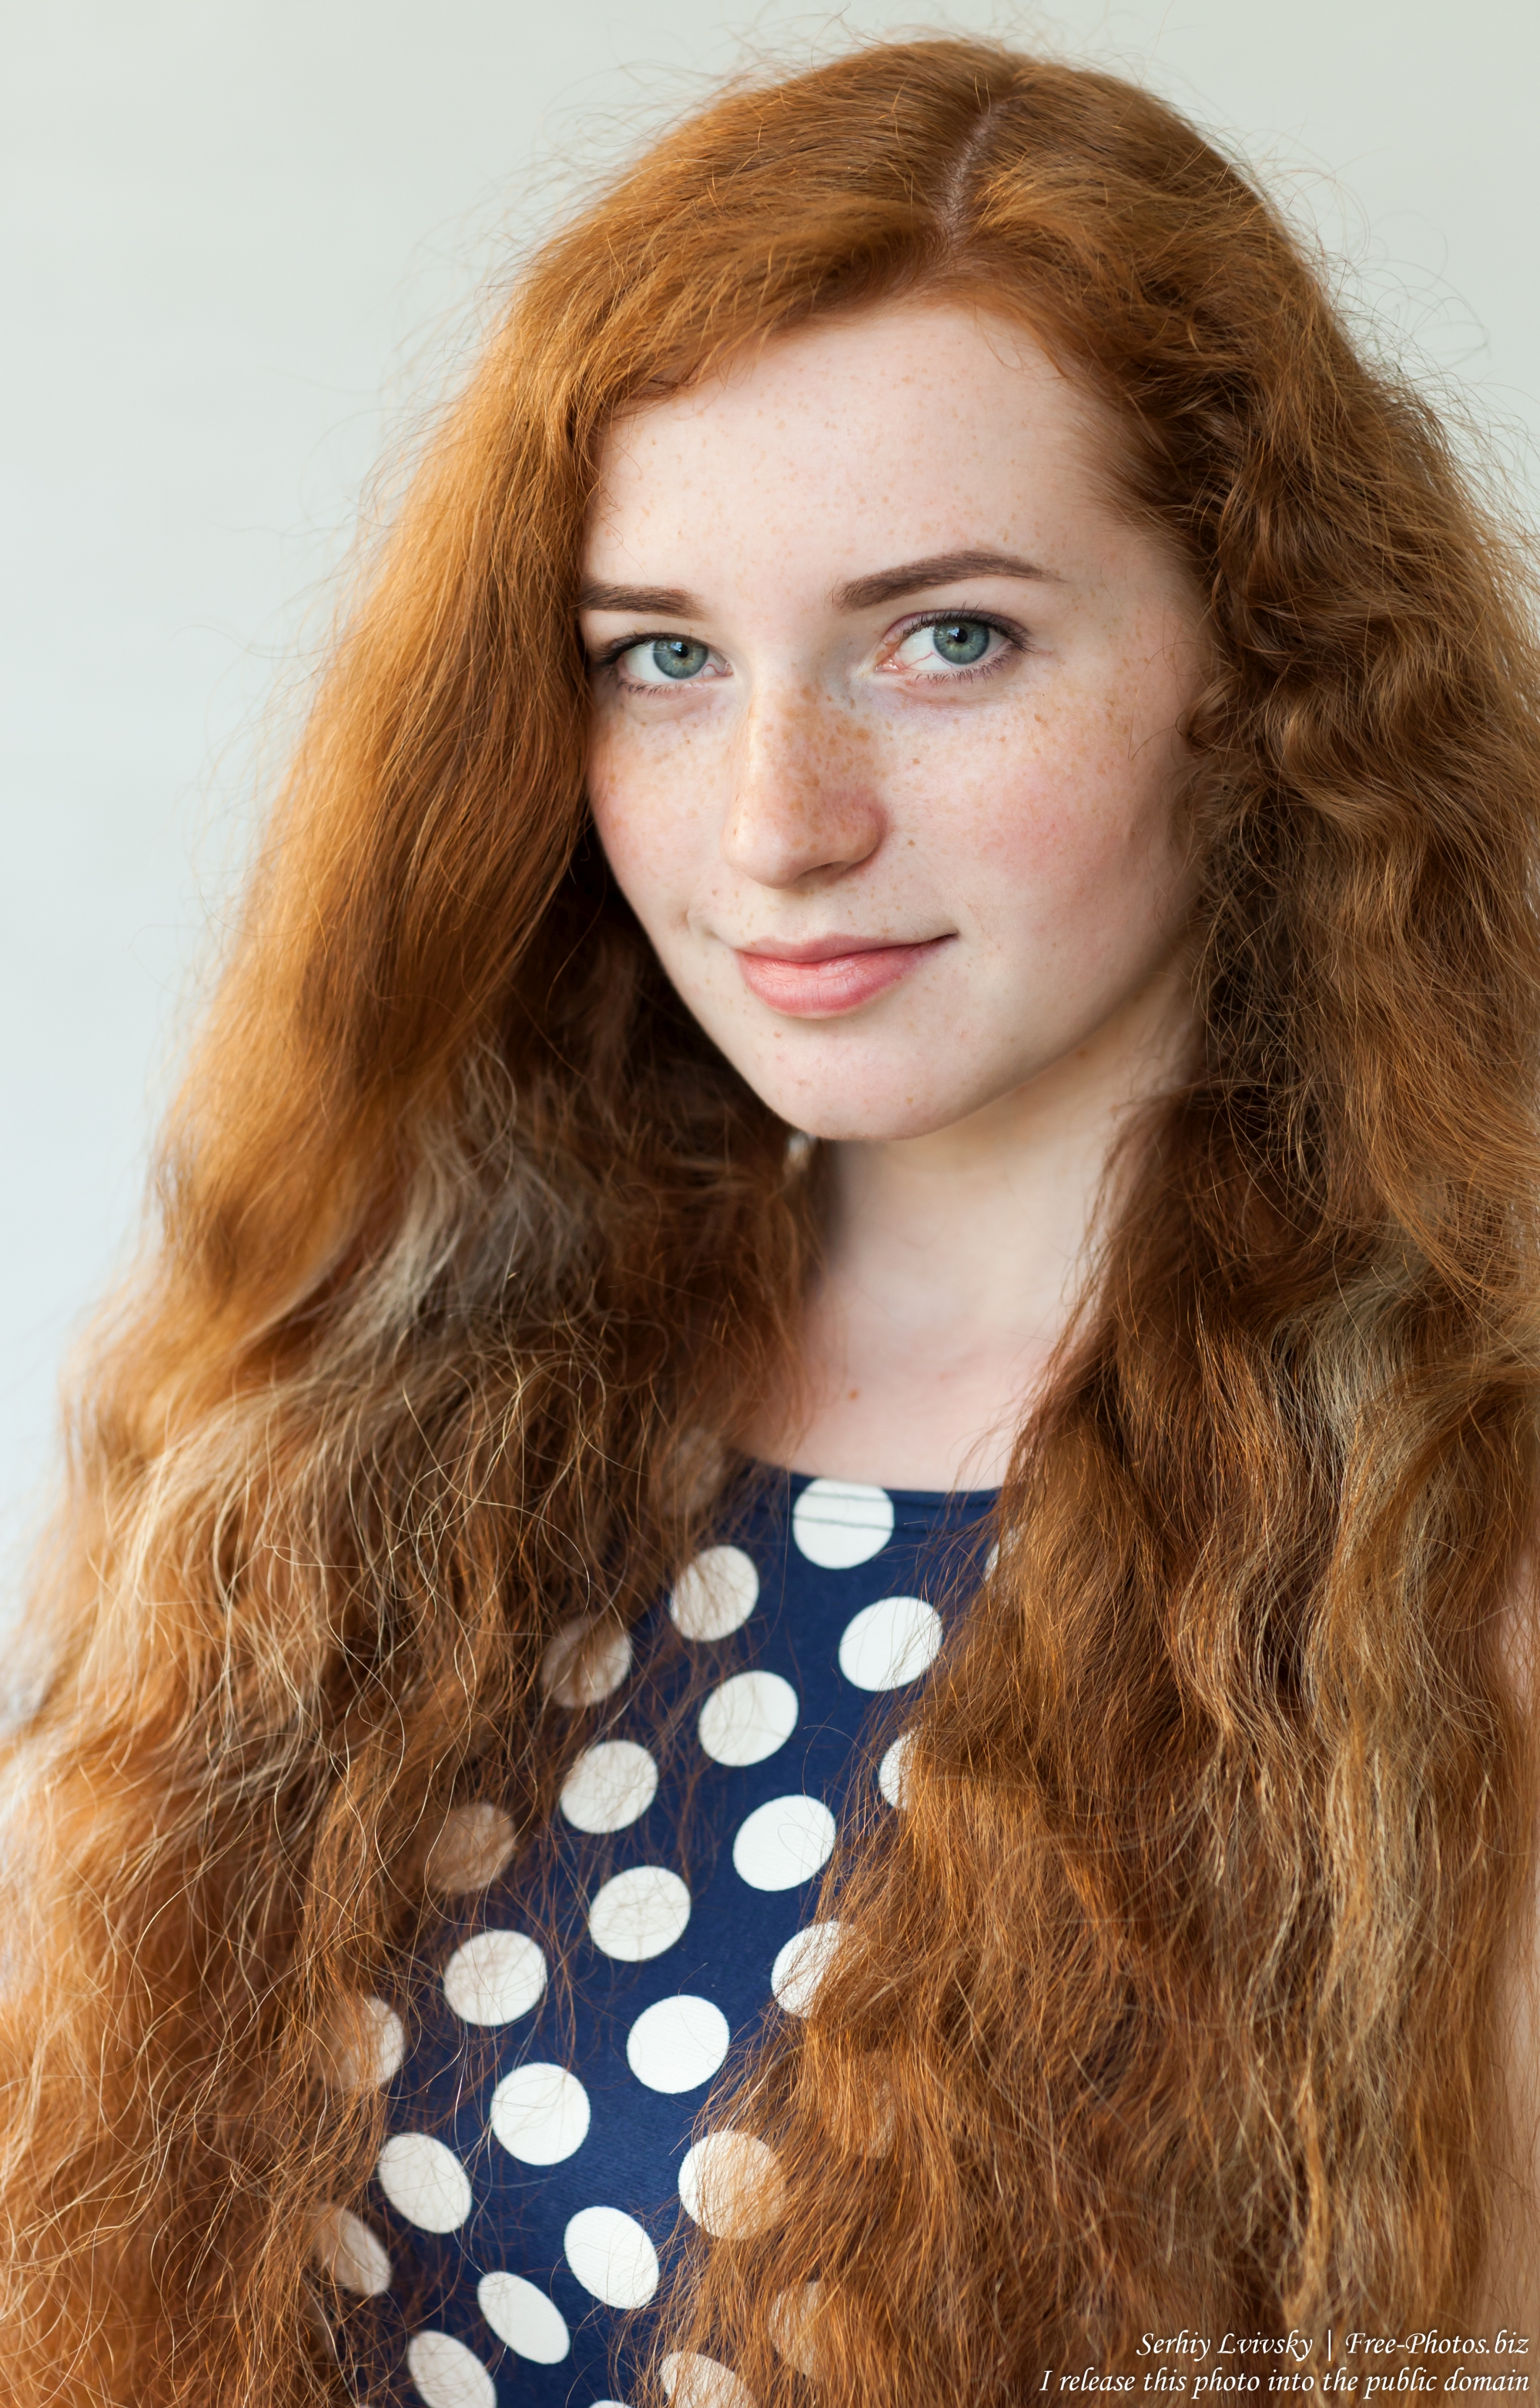 ania_a_19-year-old_natural_red-haired_girl_photographed_in_june_2017_by_serhiy_lvivsky_02